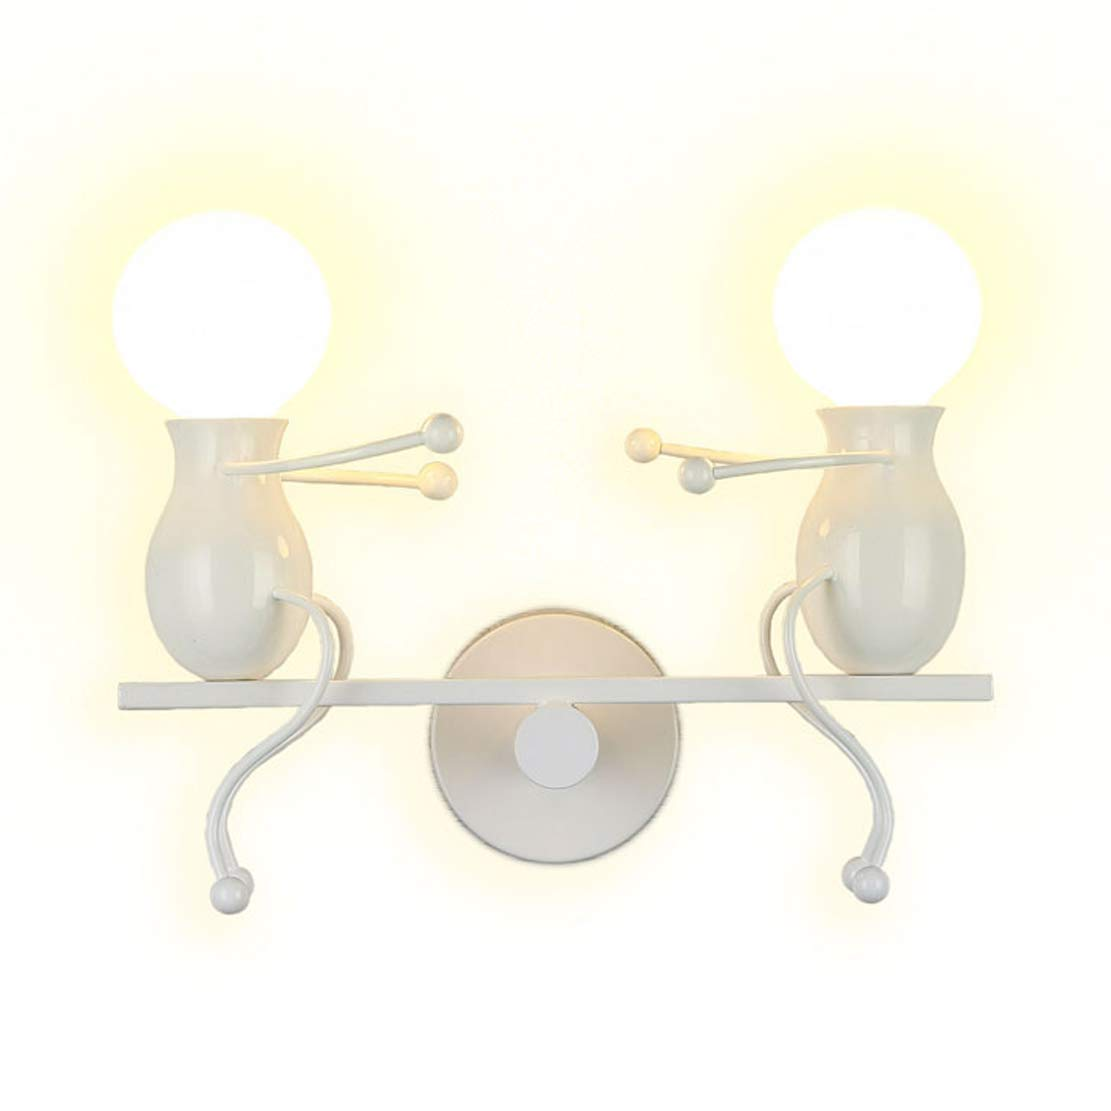 Southpo led wall light fixtures childhood seesaw double little people wall lamps bedroom modern creative decor doll bedside lamp gift children cartoon